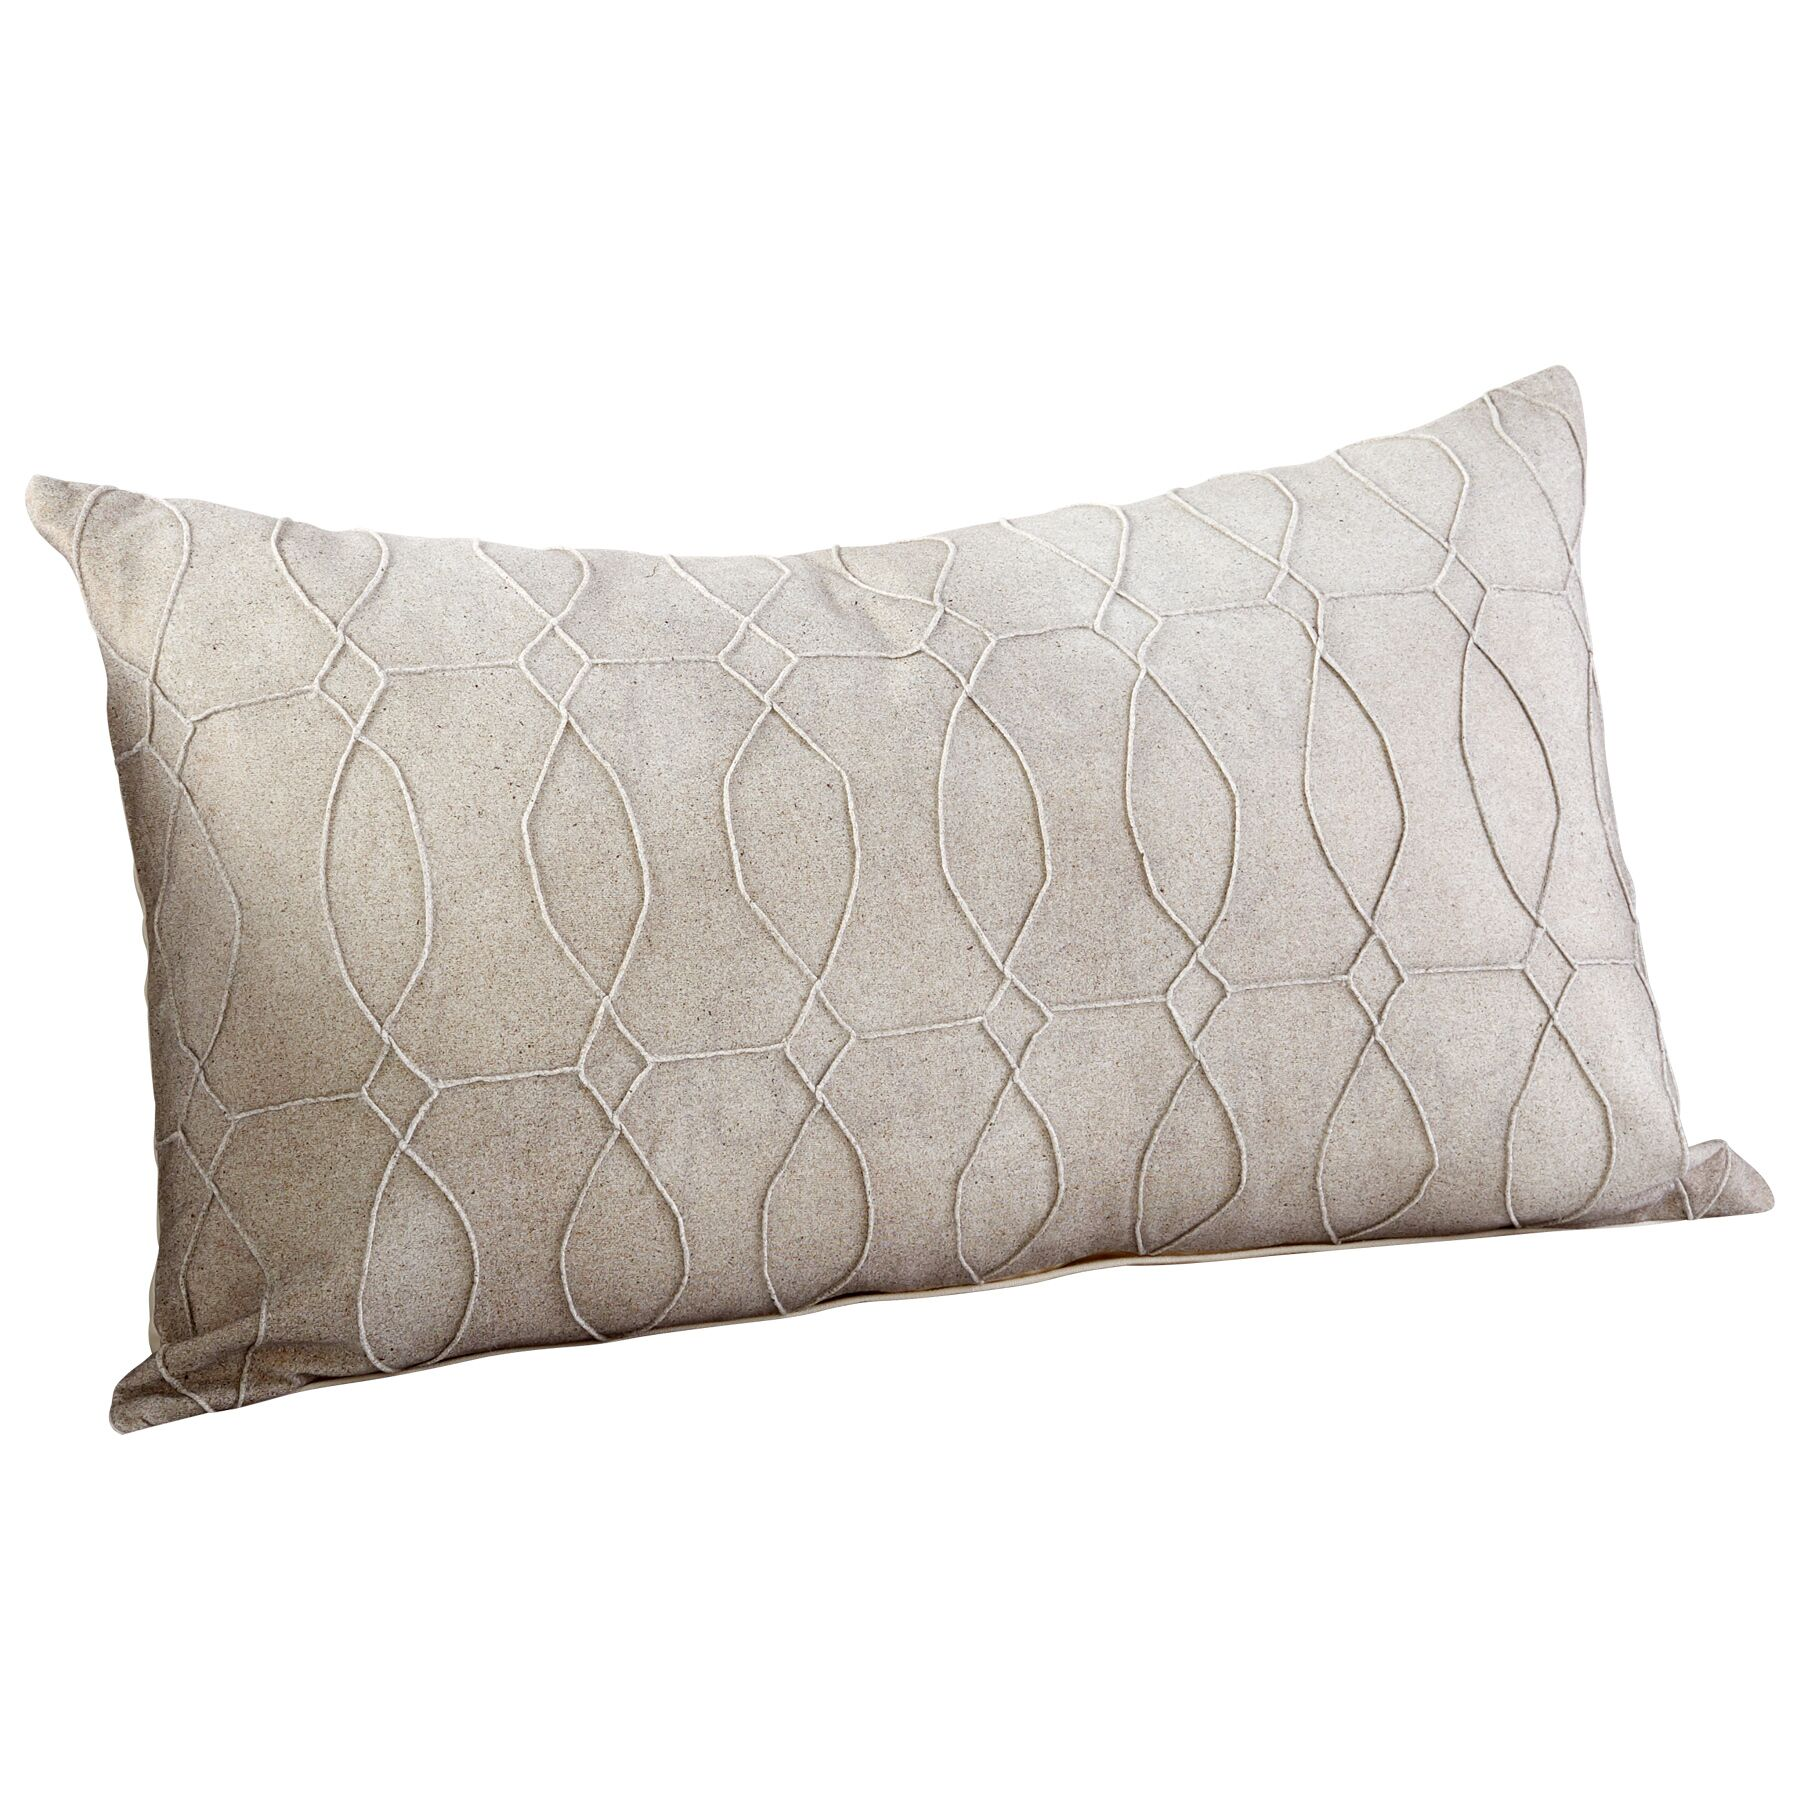 Arrieta Decorative Cotton Lumbar Pillow